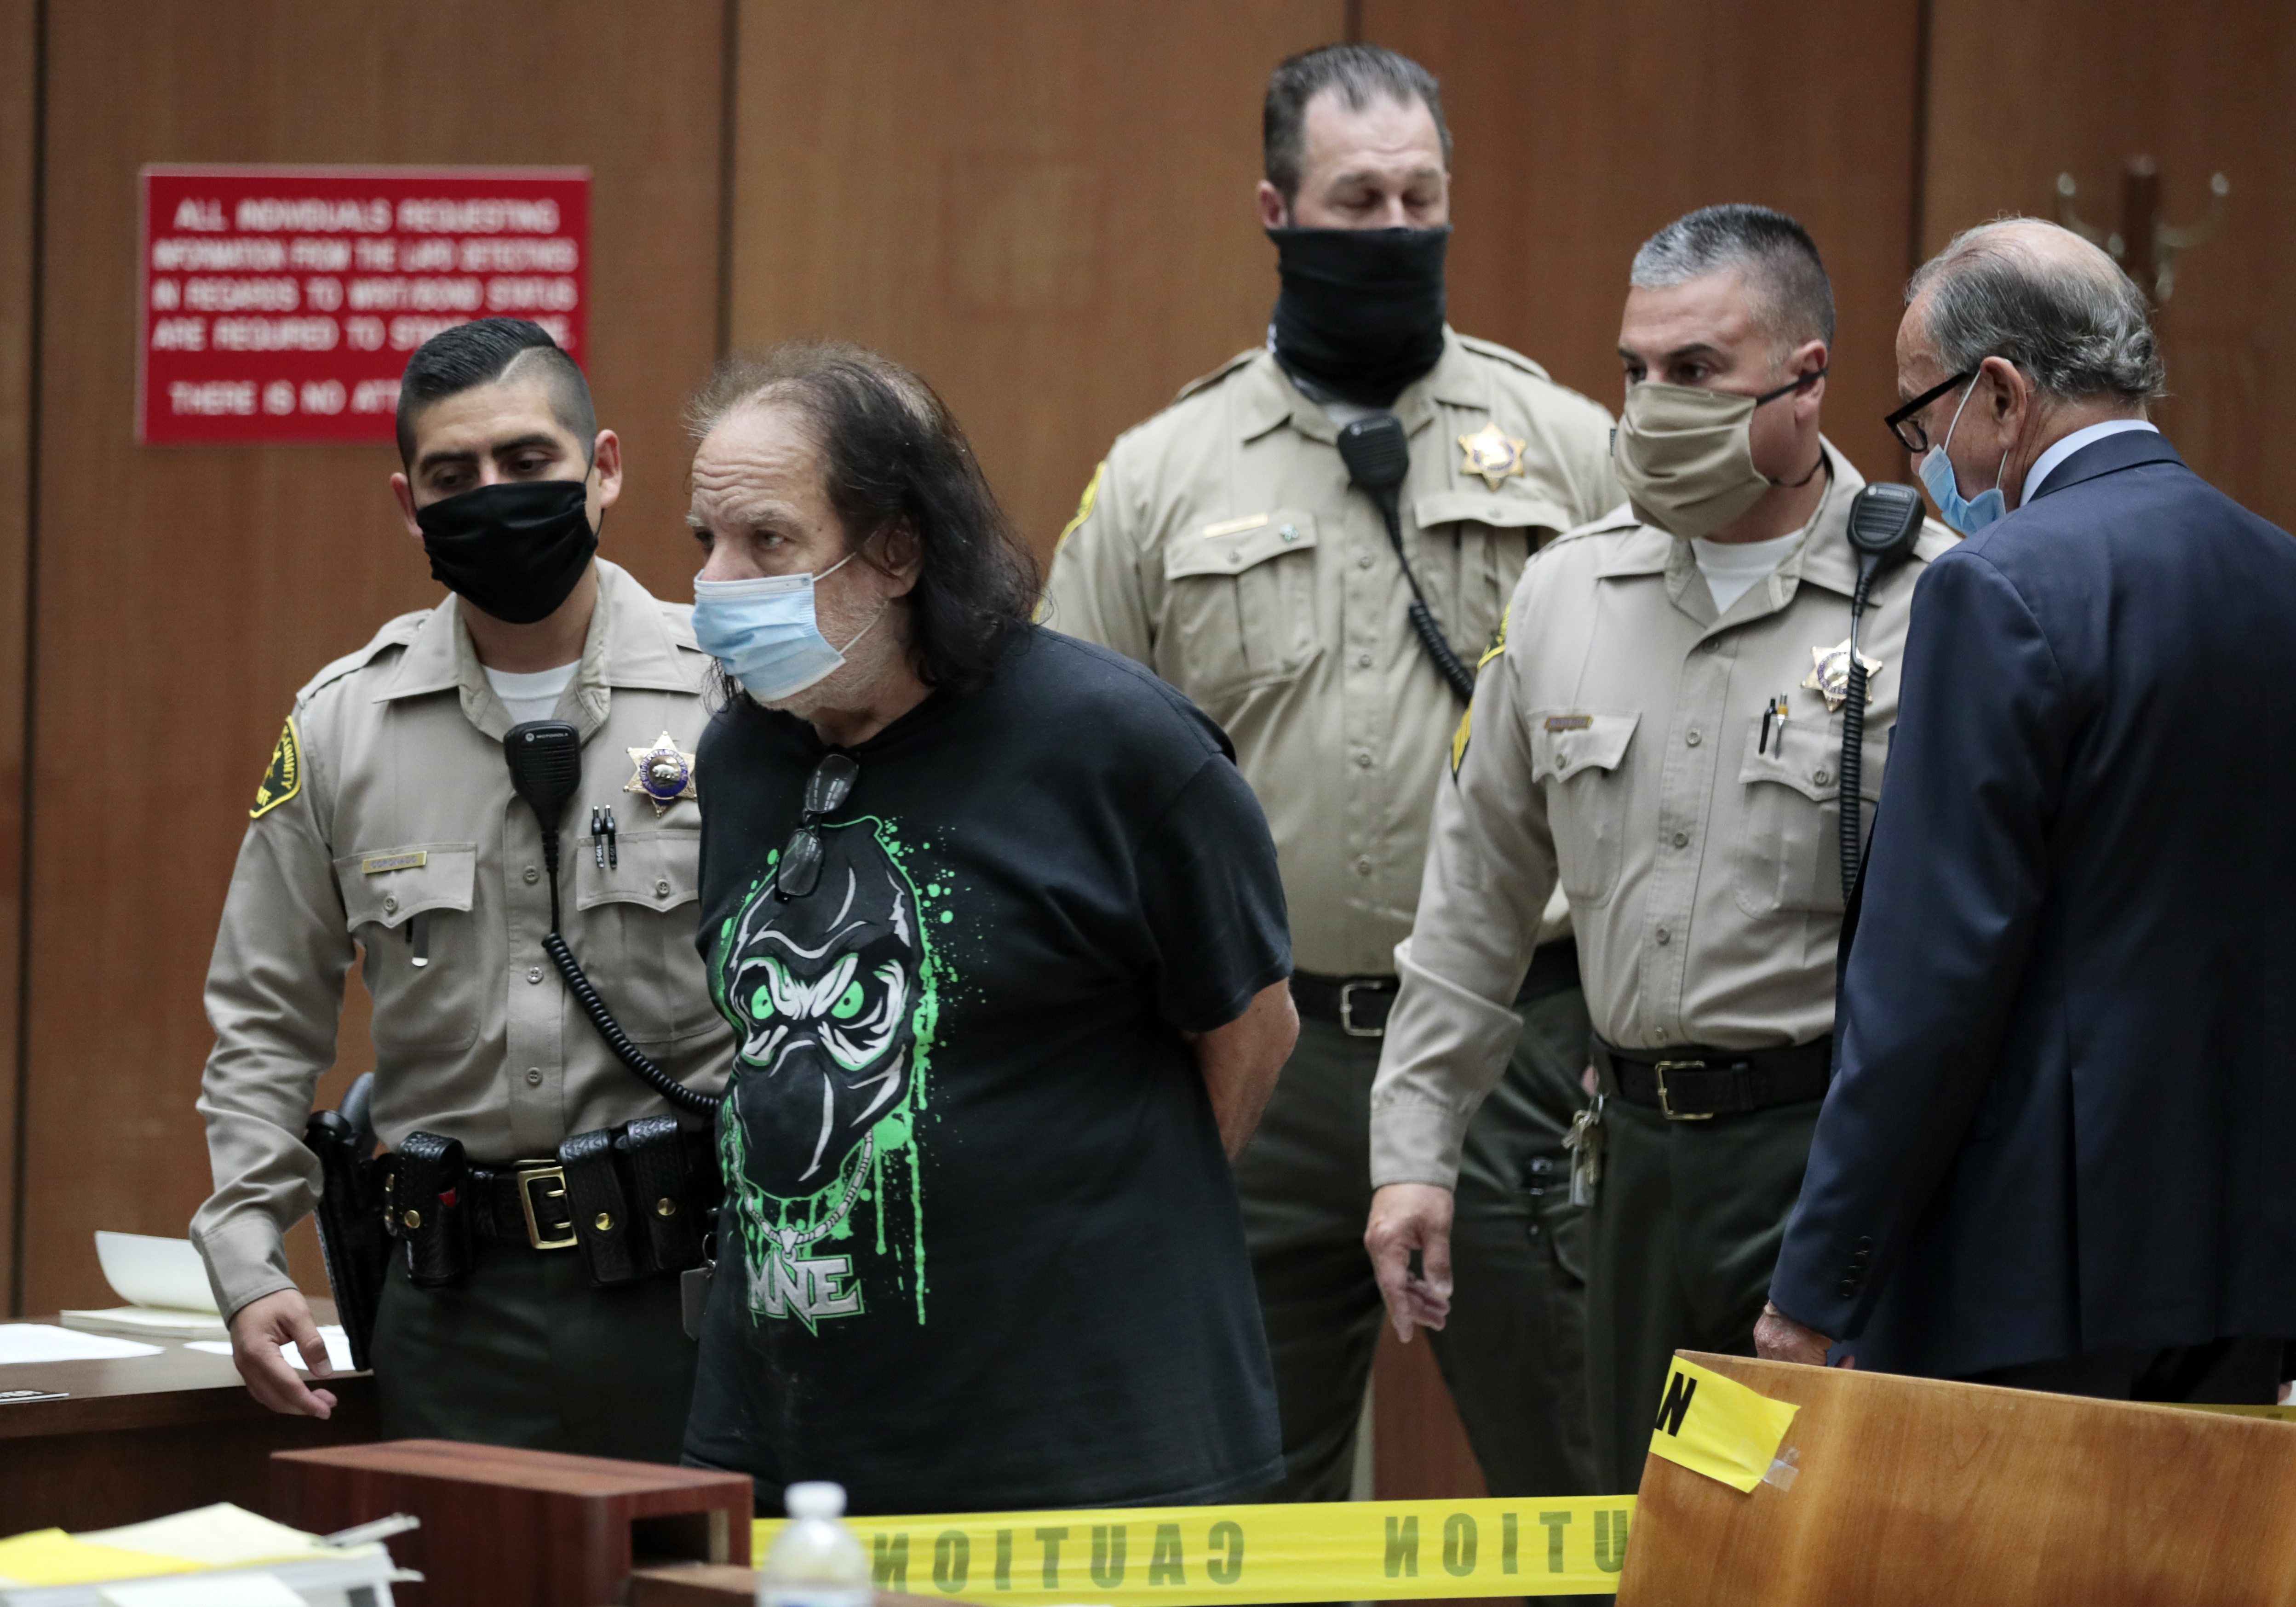 Adult film star Ron Jeremy, second left, appears in court with his attorney Stuart Goldfarb, right, upon being charged with sexually assaulting four women, in Dept. 30 at Los Angeles Superior Court in Los Angeles, Tuesday, June 23, 2020. Los Angeles County prosecutors say Jeremy has been charged with raping three women and sexually assaulting a fourth. (Robert Gauthier/Los Angeles Times via AP, Pool)